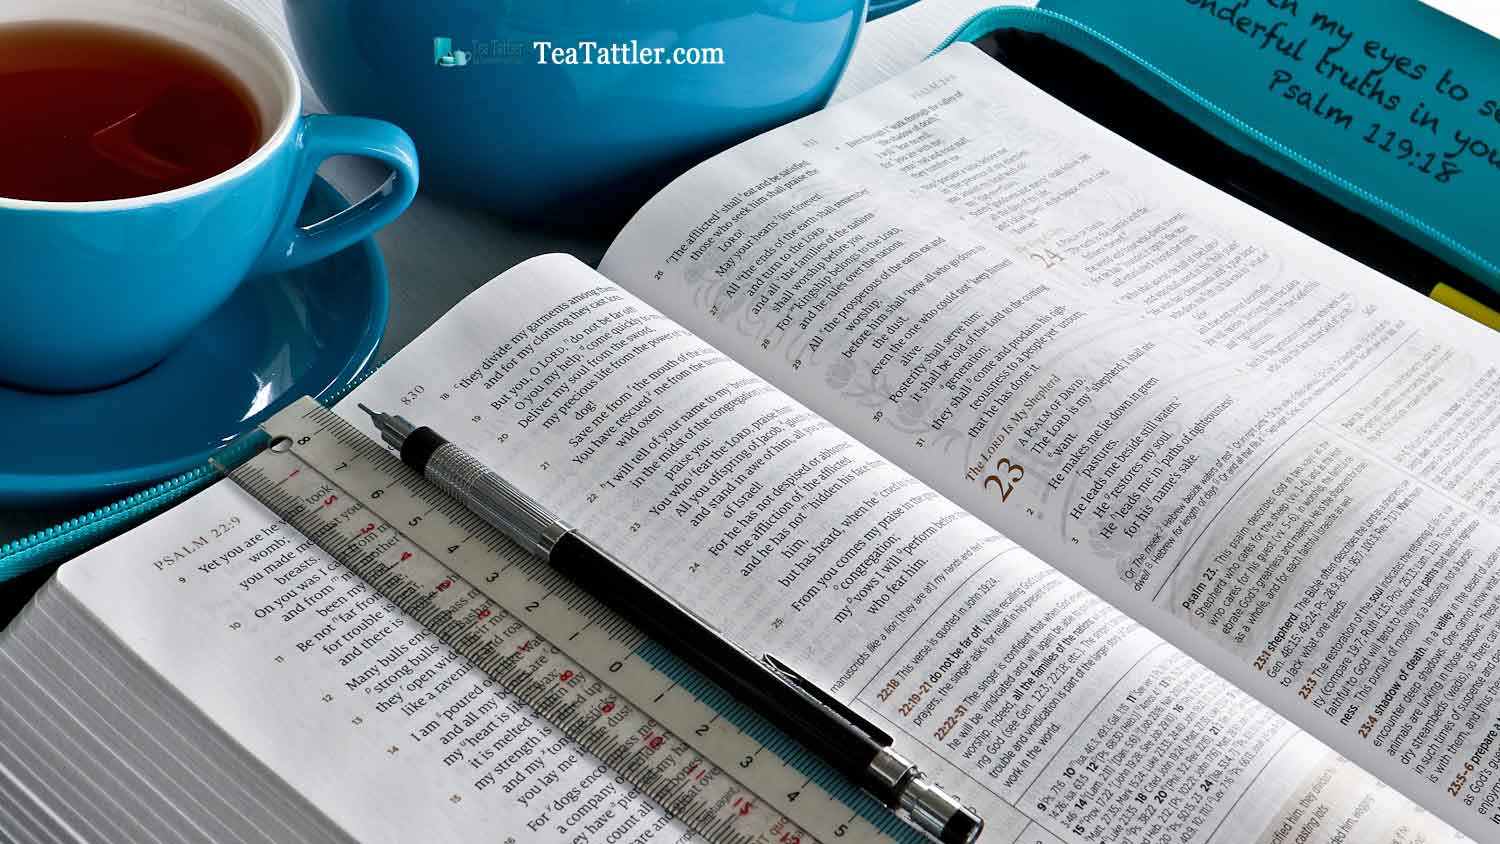 Tea Tattler Relaunch - sharing all things tea with a divine perspective. Please join us as we explore Scripture and the joys of tea together. | TeaTattler.com #TeaTattler